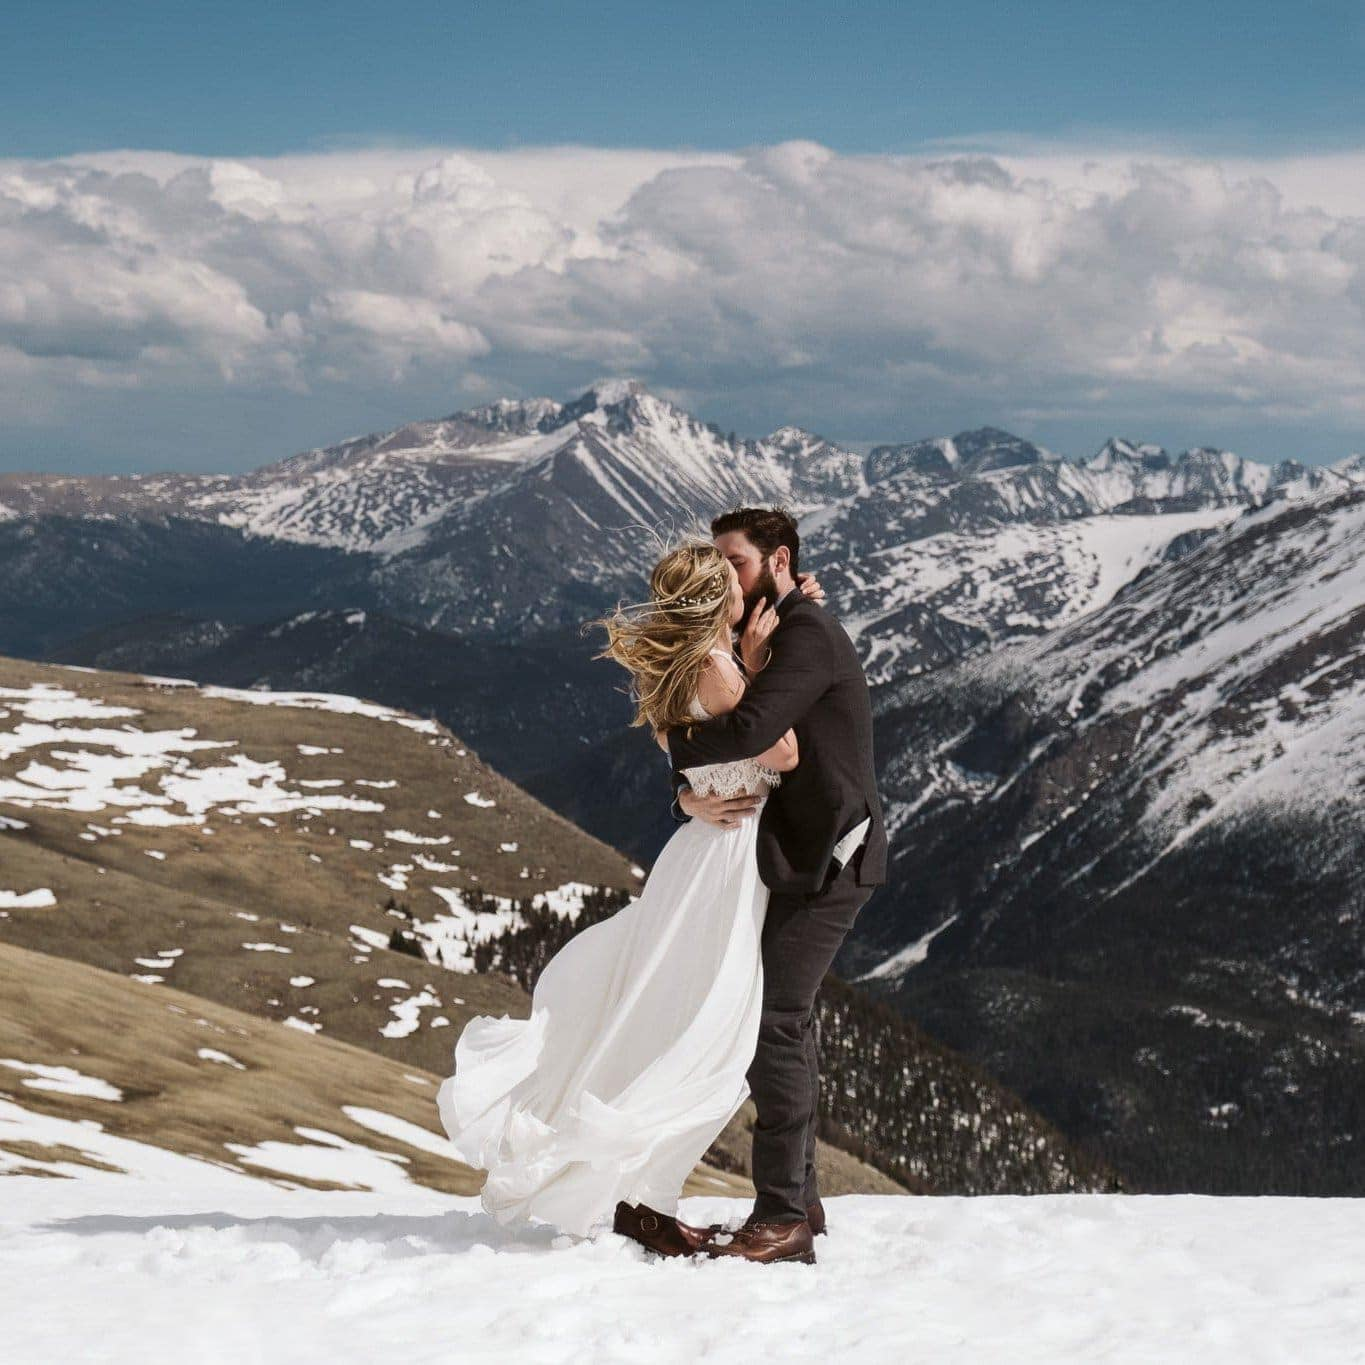 Colorado elopement photographer Larsen Photo Co.